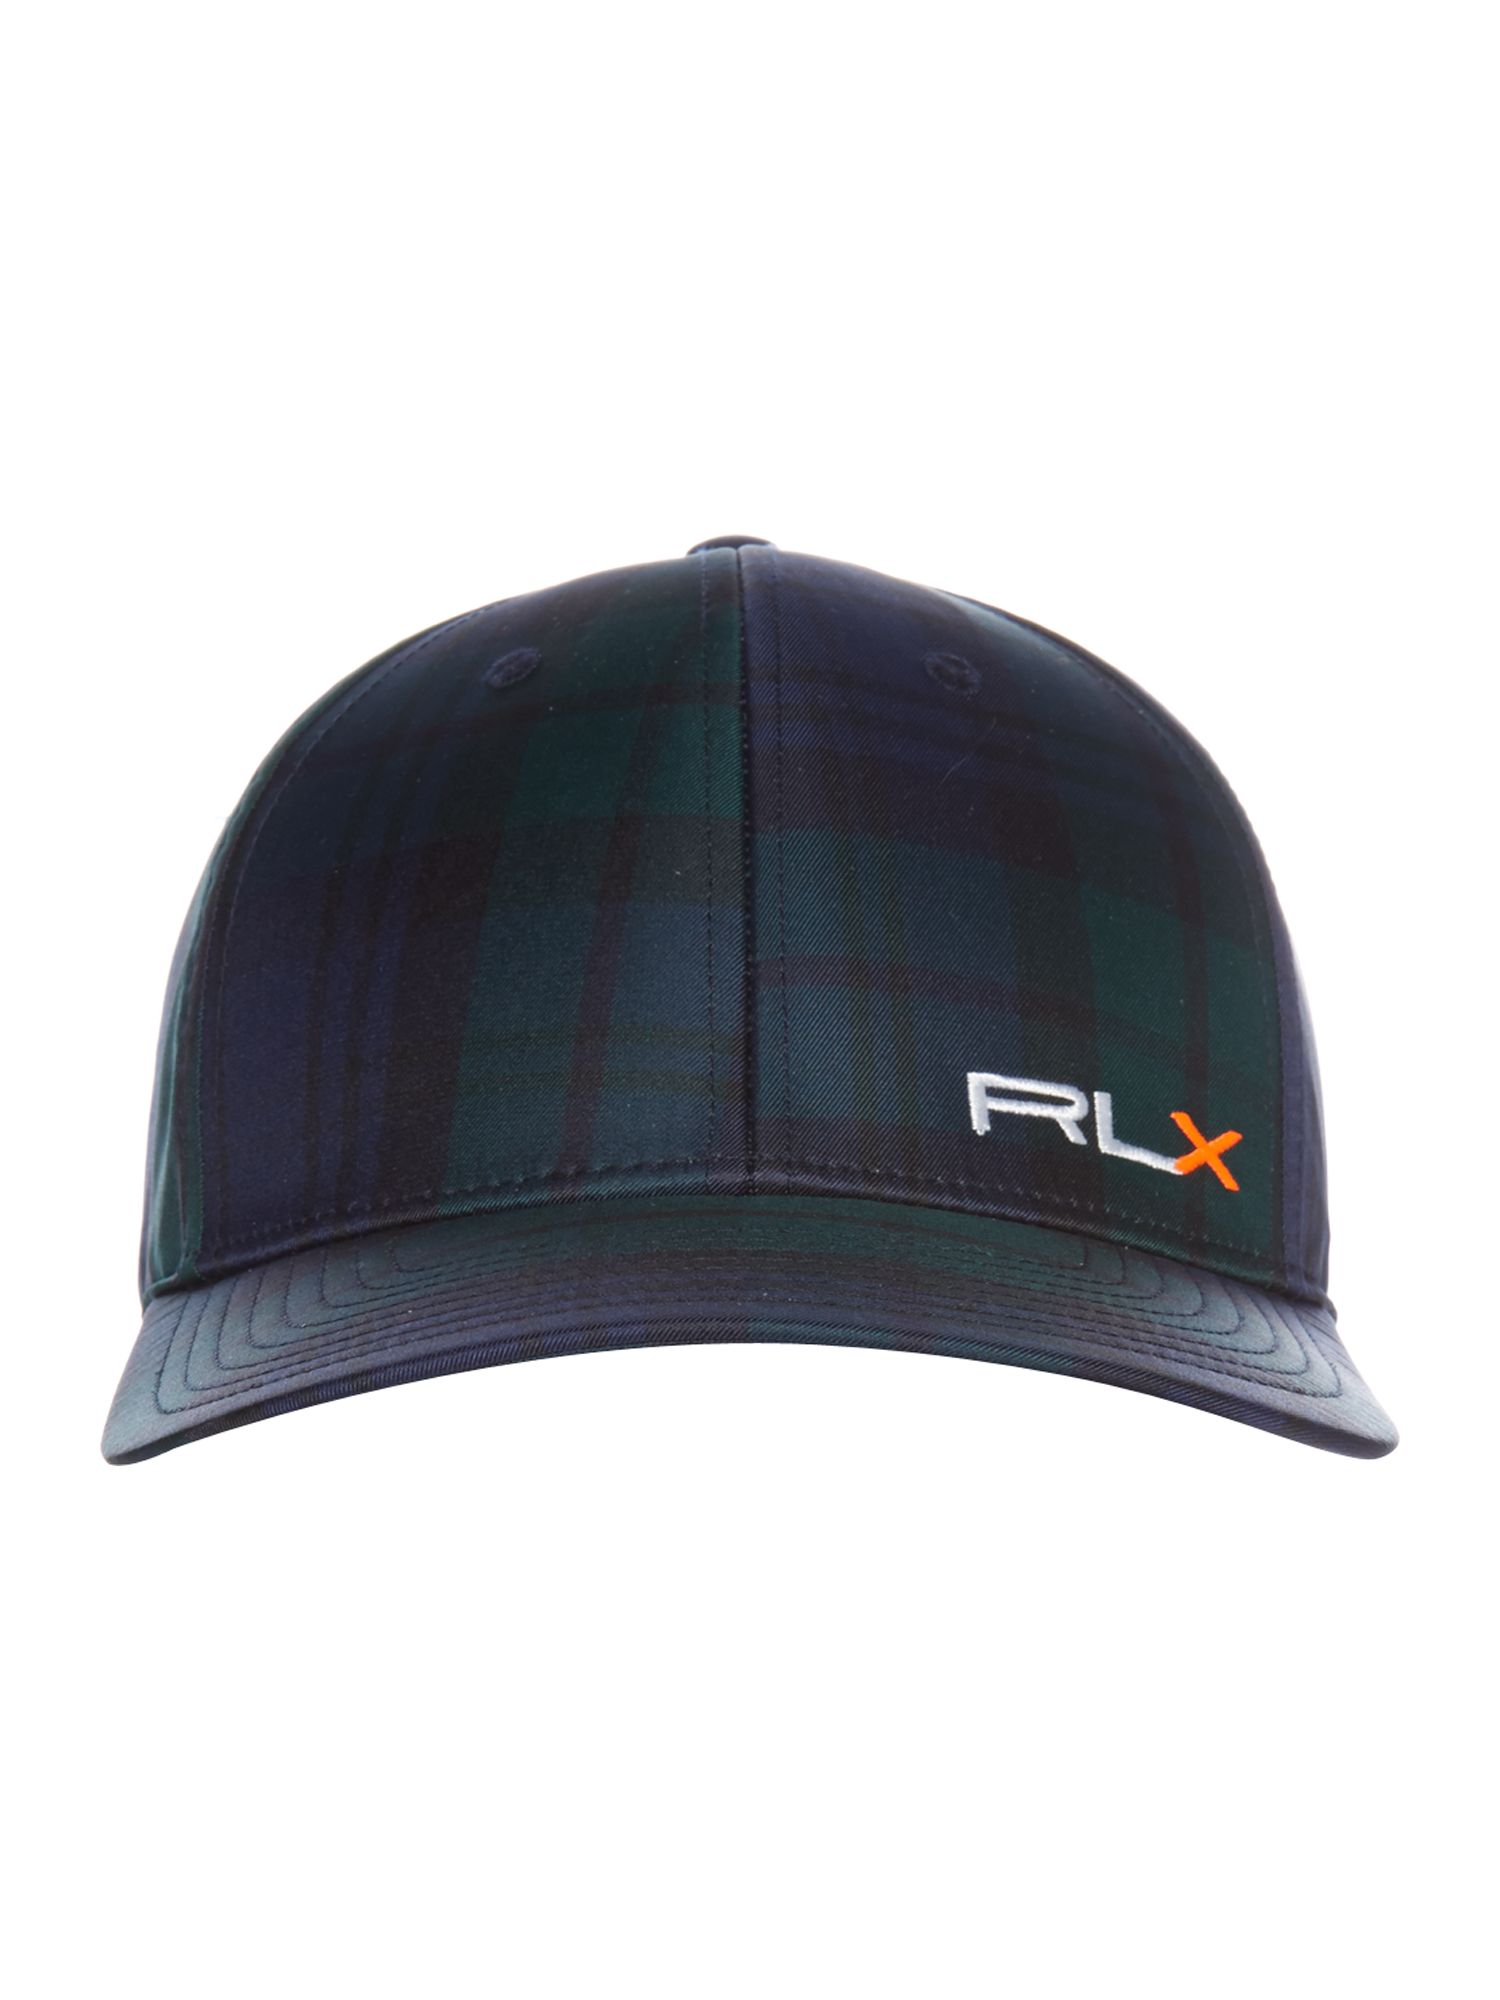 Tartan flex fit golf cap